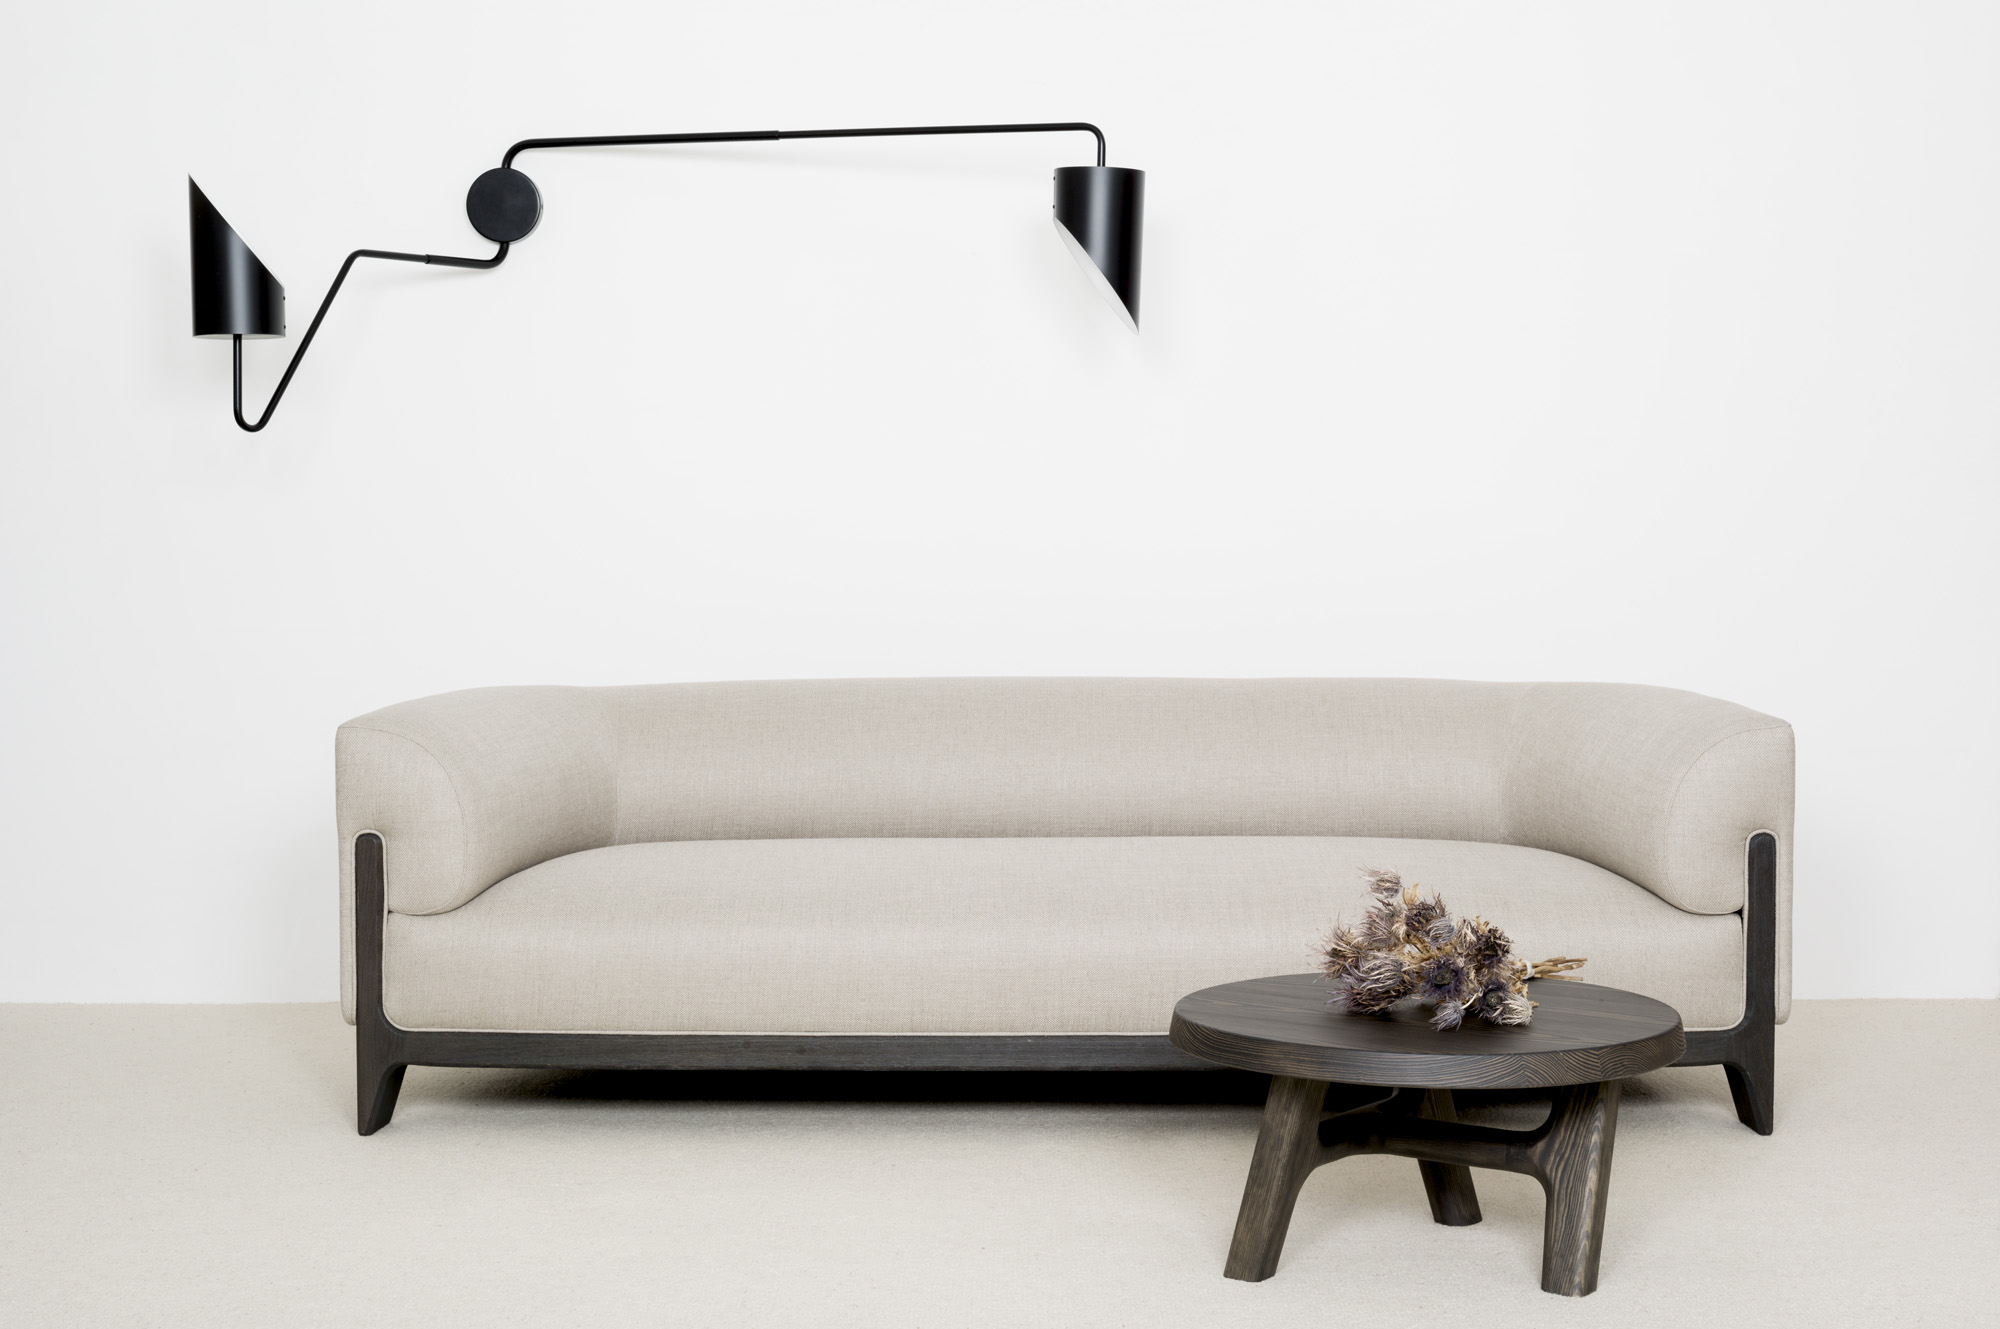 Swn Wall Lamp Bob Sofa Bui Side Table - Christophe Delcourt